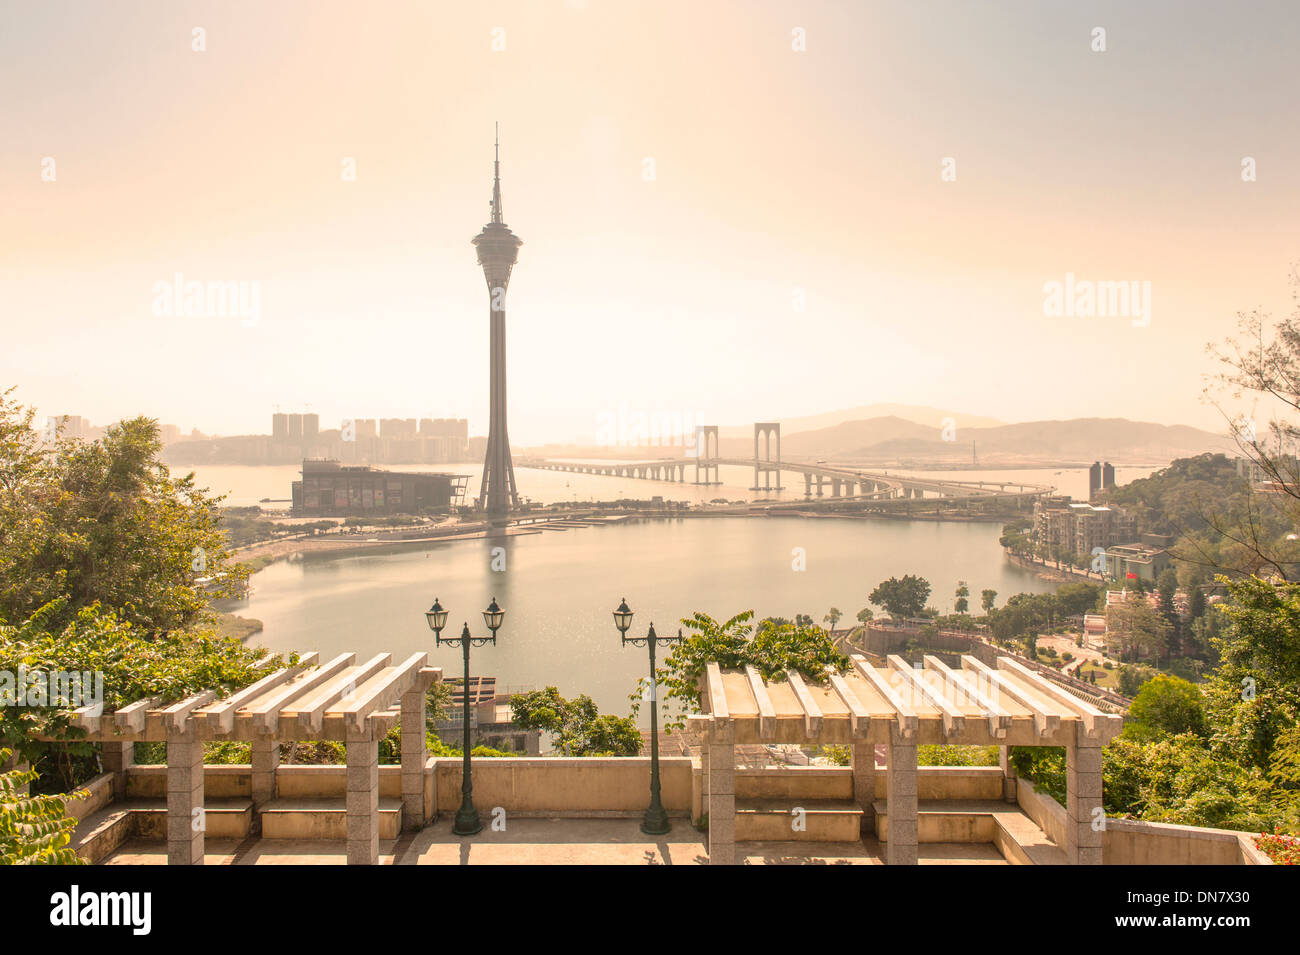 Macau tower seen from Penha hill, a landmark building, dining venue and viewing tower at Macao, SAR of China - Stock Image